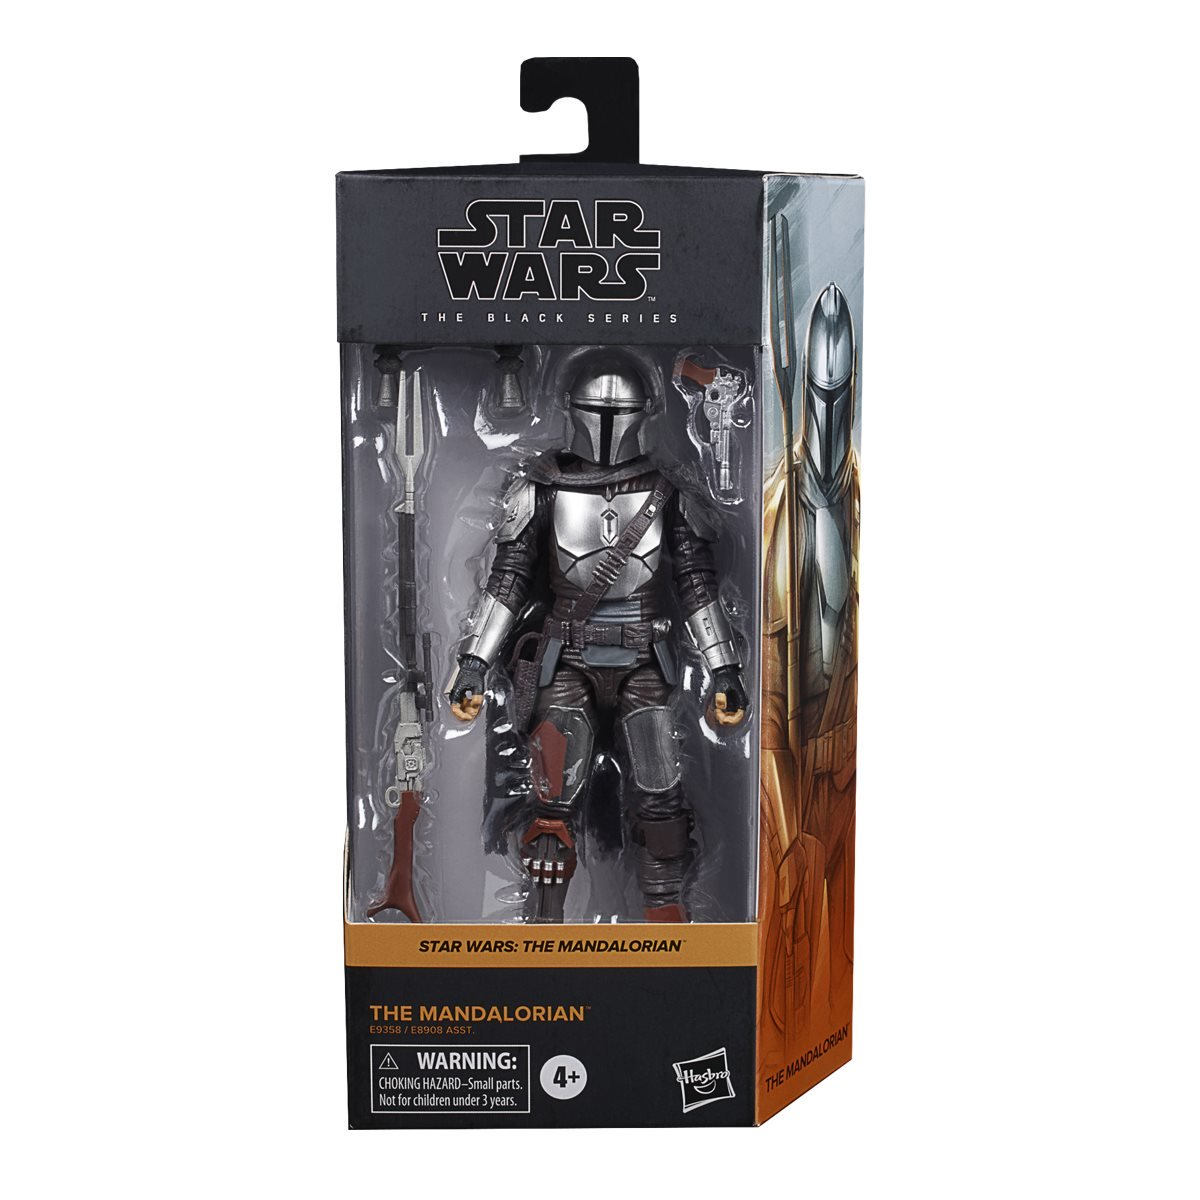 Star Wars The Black Series The Mandalorian Beskar Action Figure